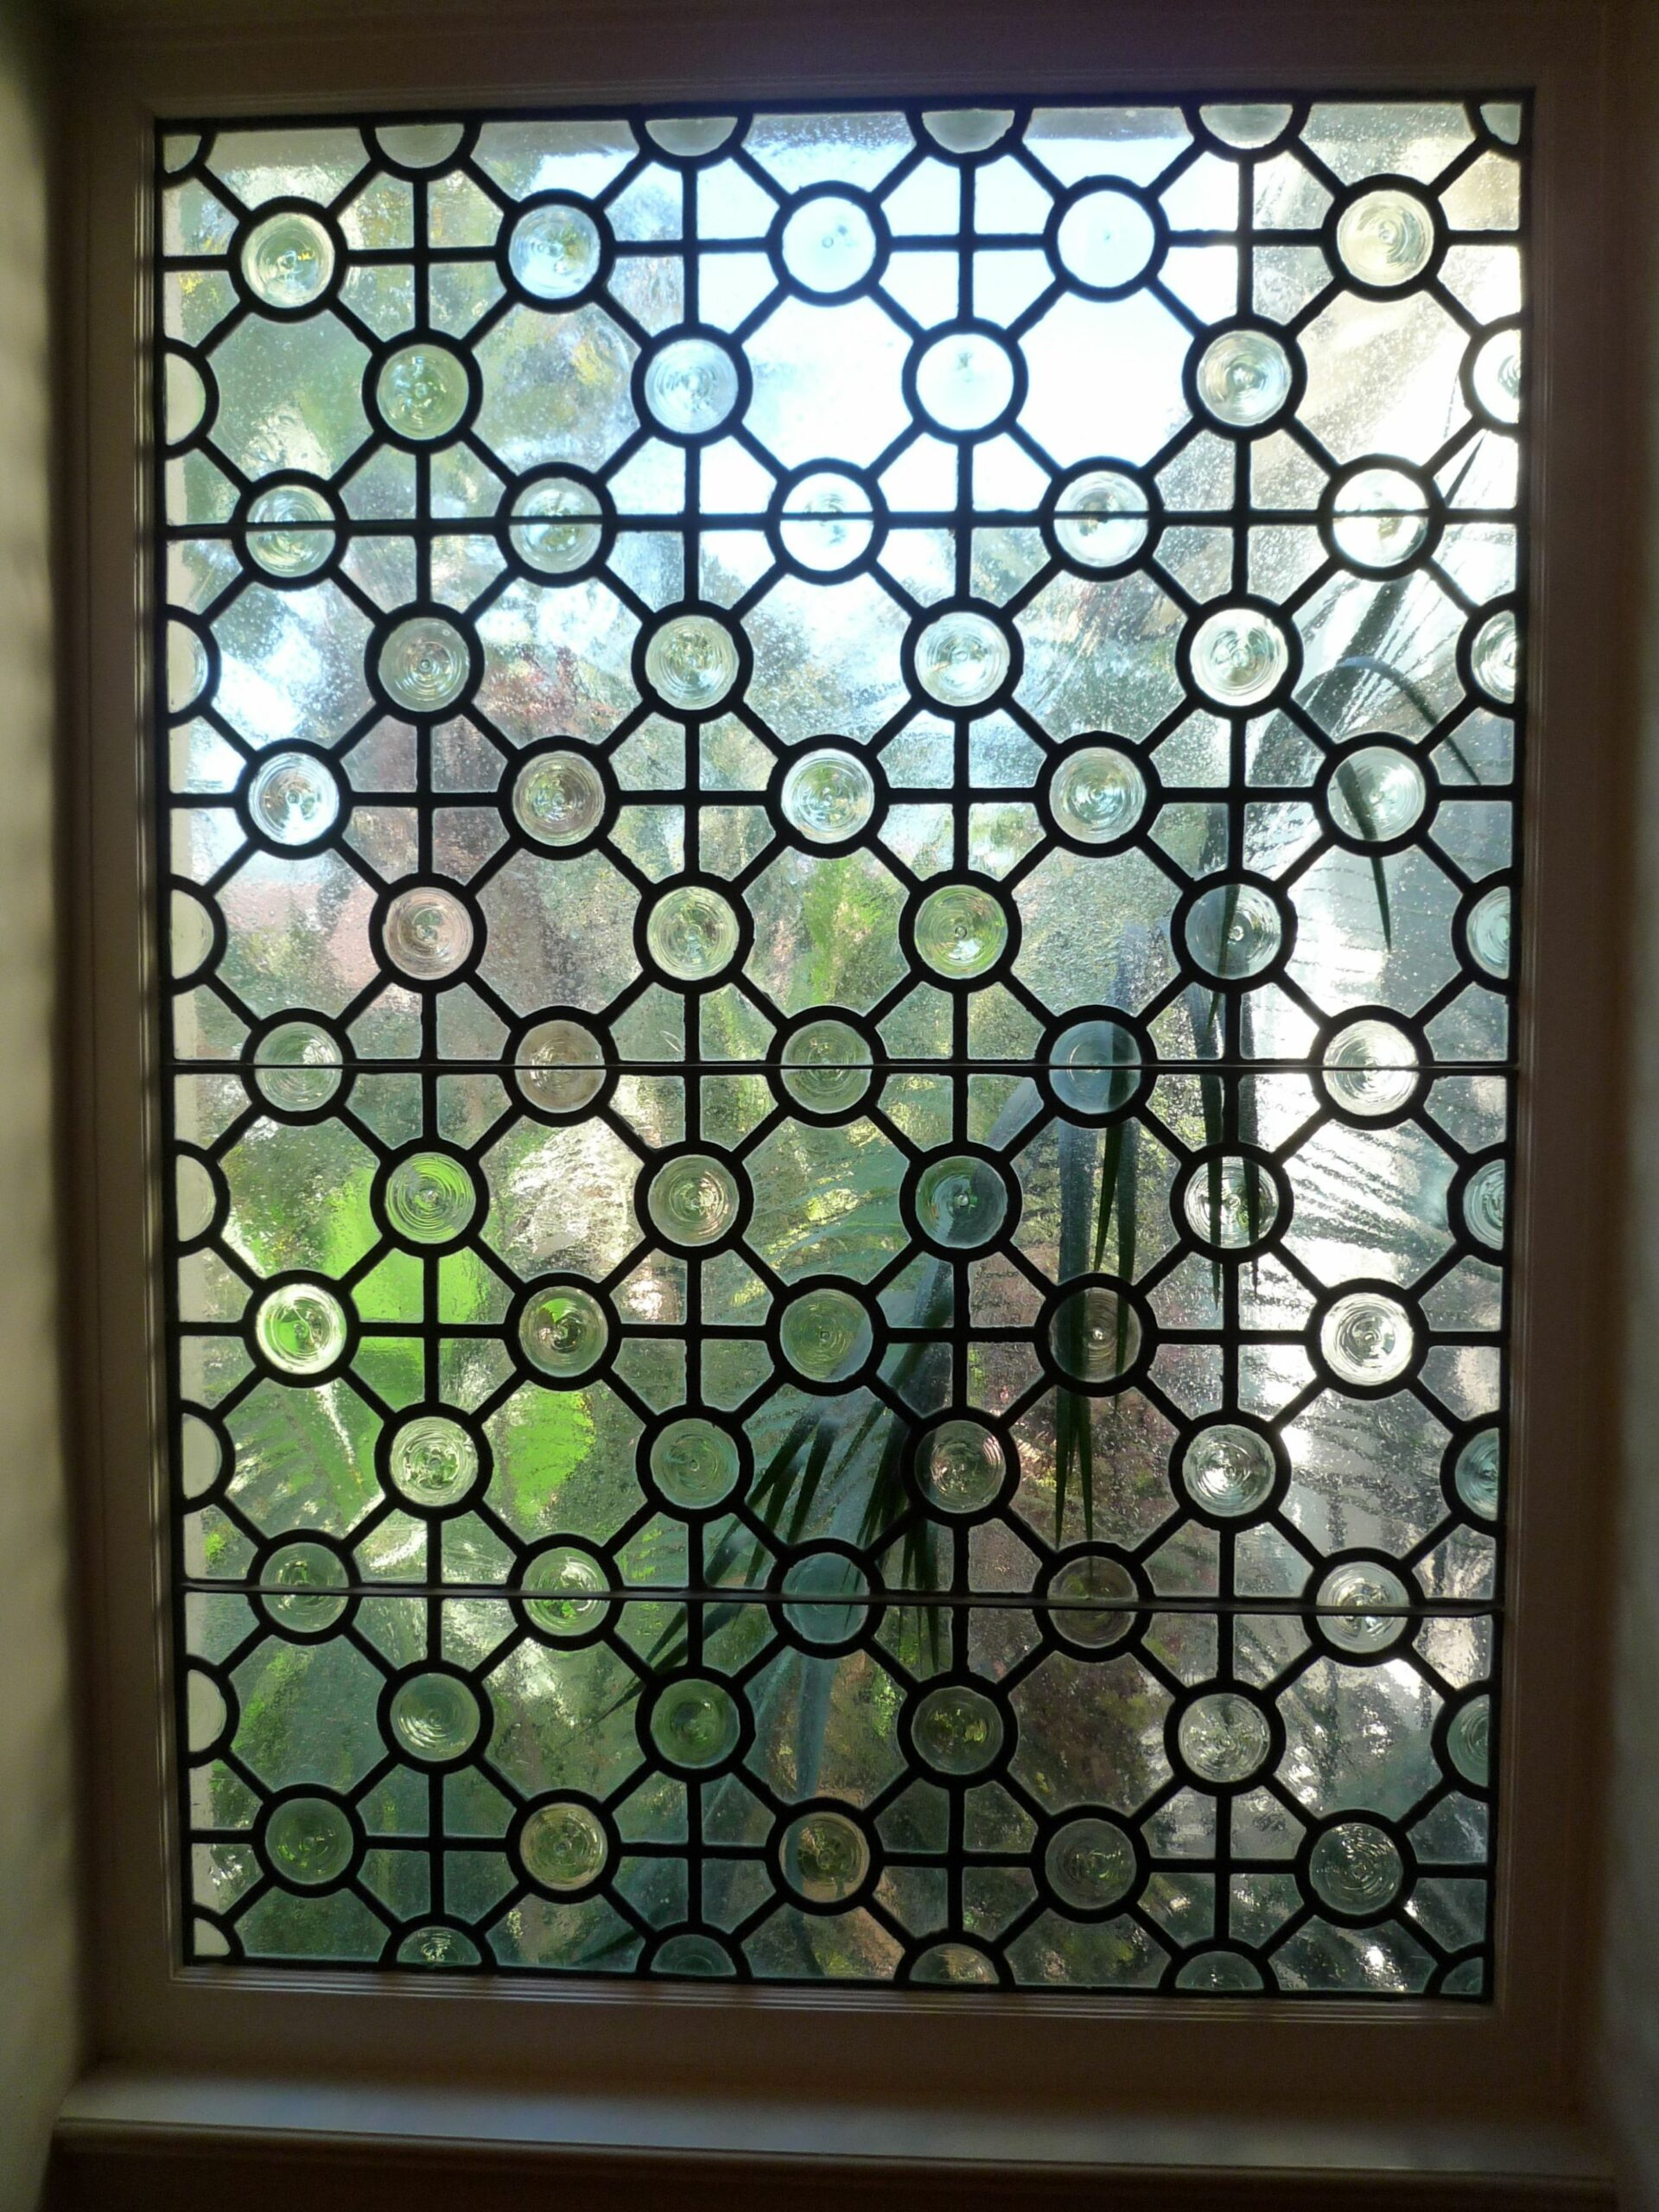 Long stair window glass idea - this can be done with Gallery Glass ...